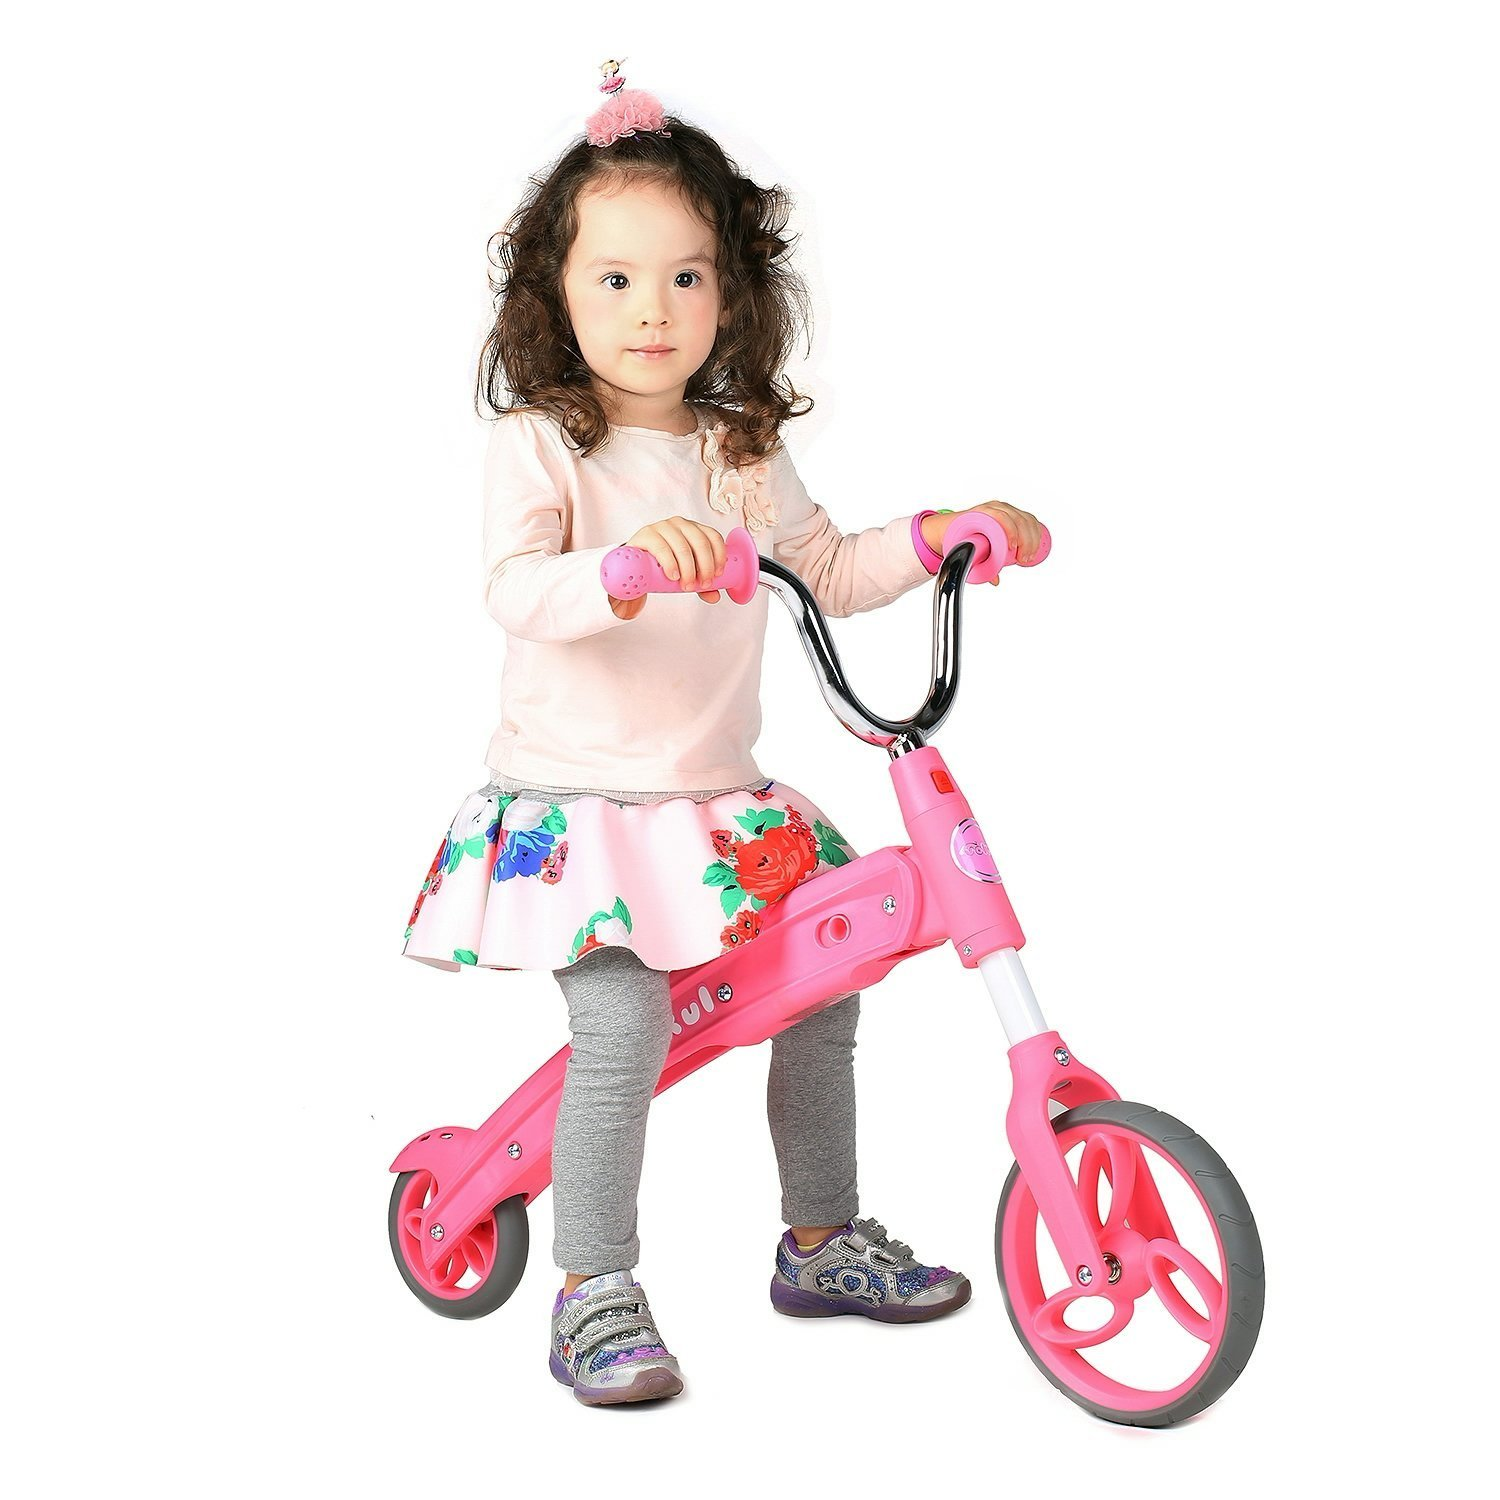 Vokul GX02 Kid Balance Bike Toddler Scooter Without Pedal for Age 3-5/Pink